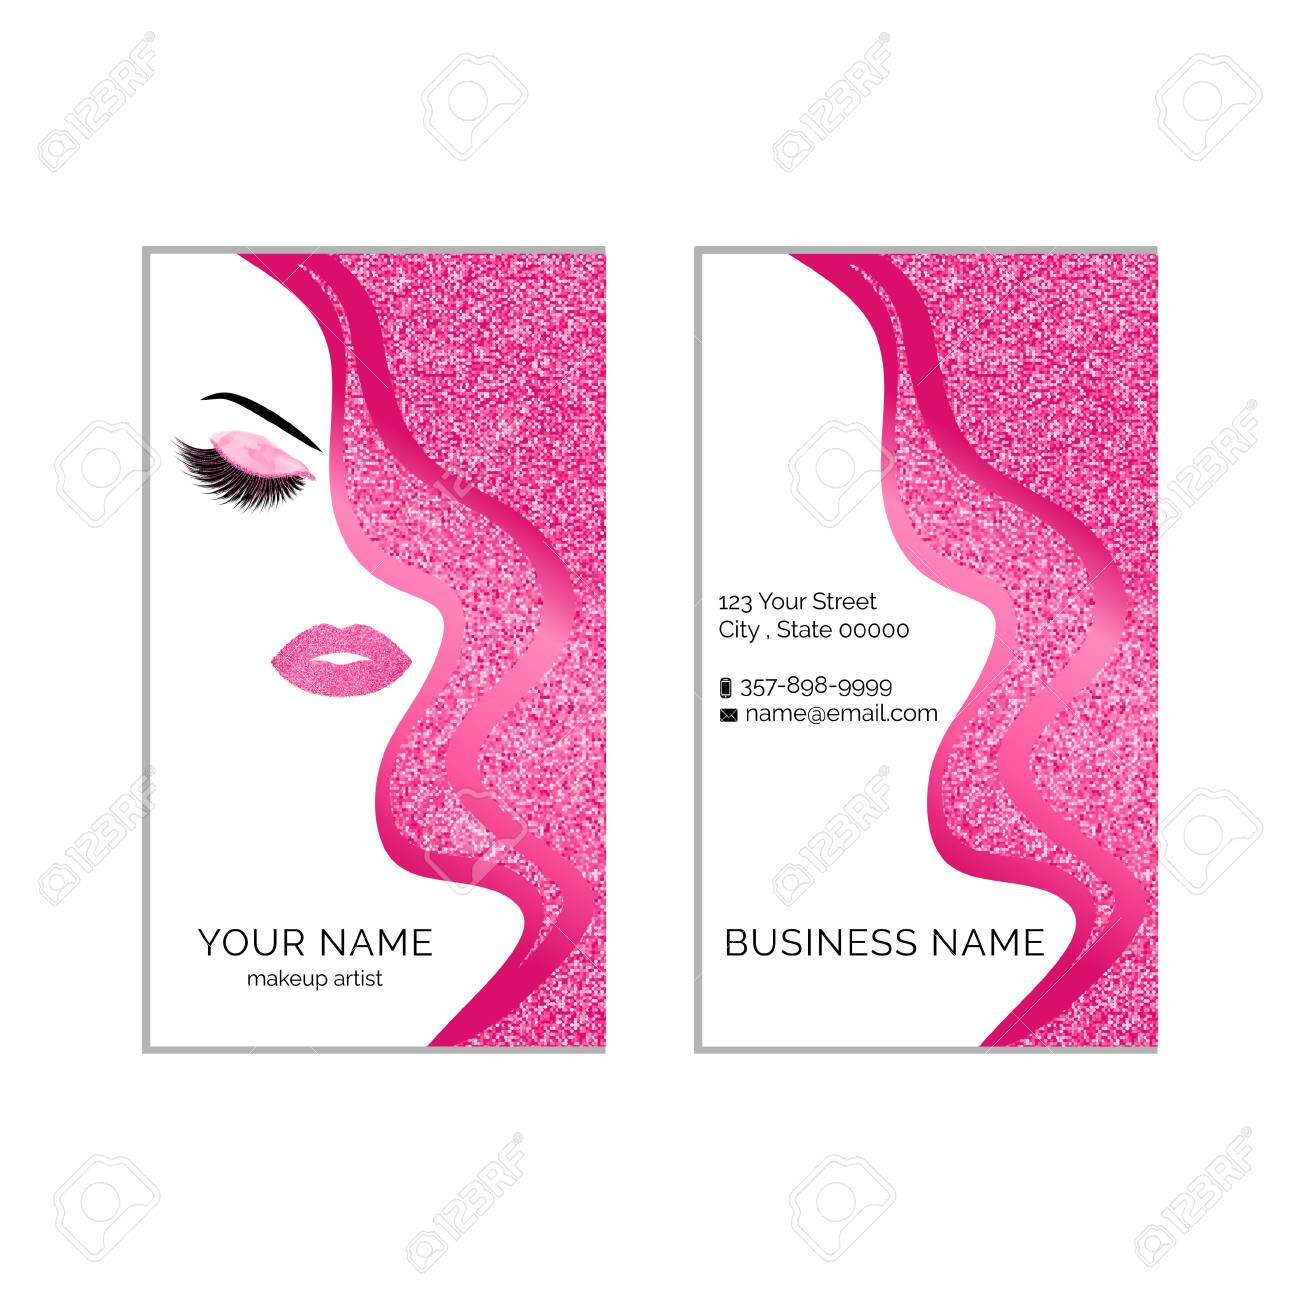 Makeup Artist Business Card Template Royalty Free Cliparts Vectors